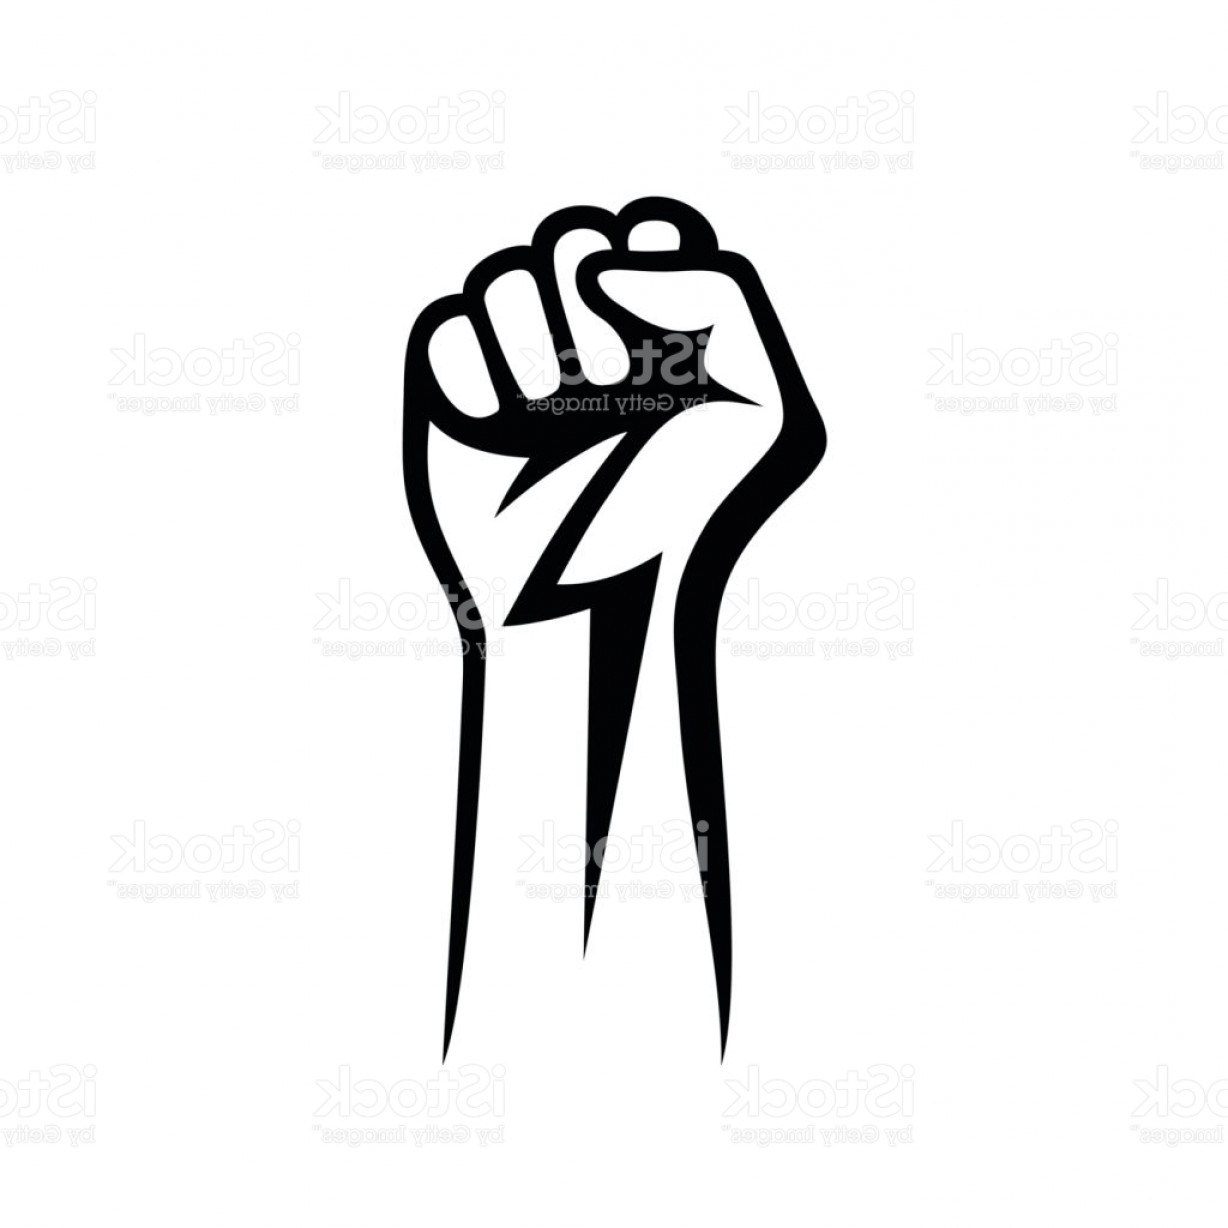 Black Power Fist Vector: Fist Male Hand Proletarian Protest Symbol Power Sign Gm